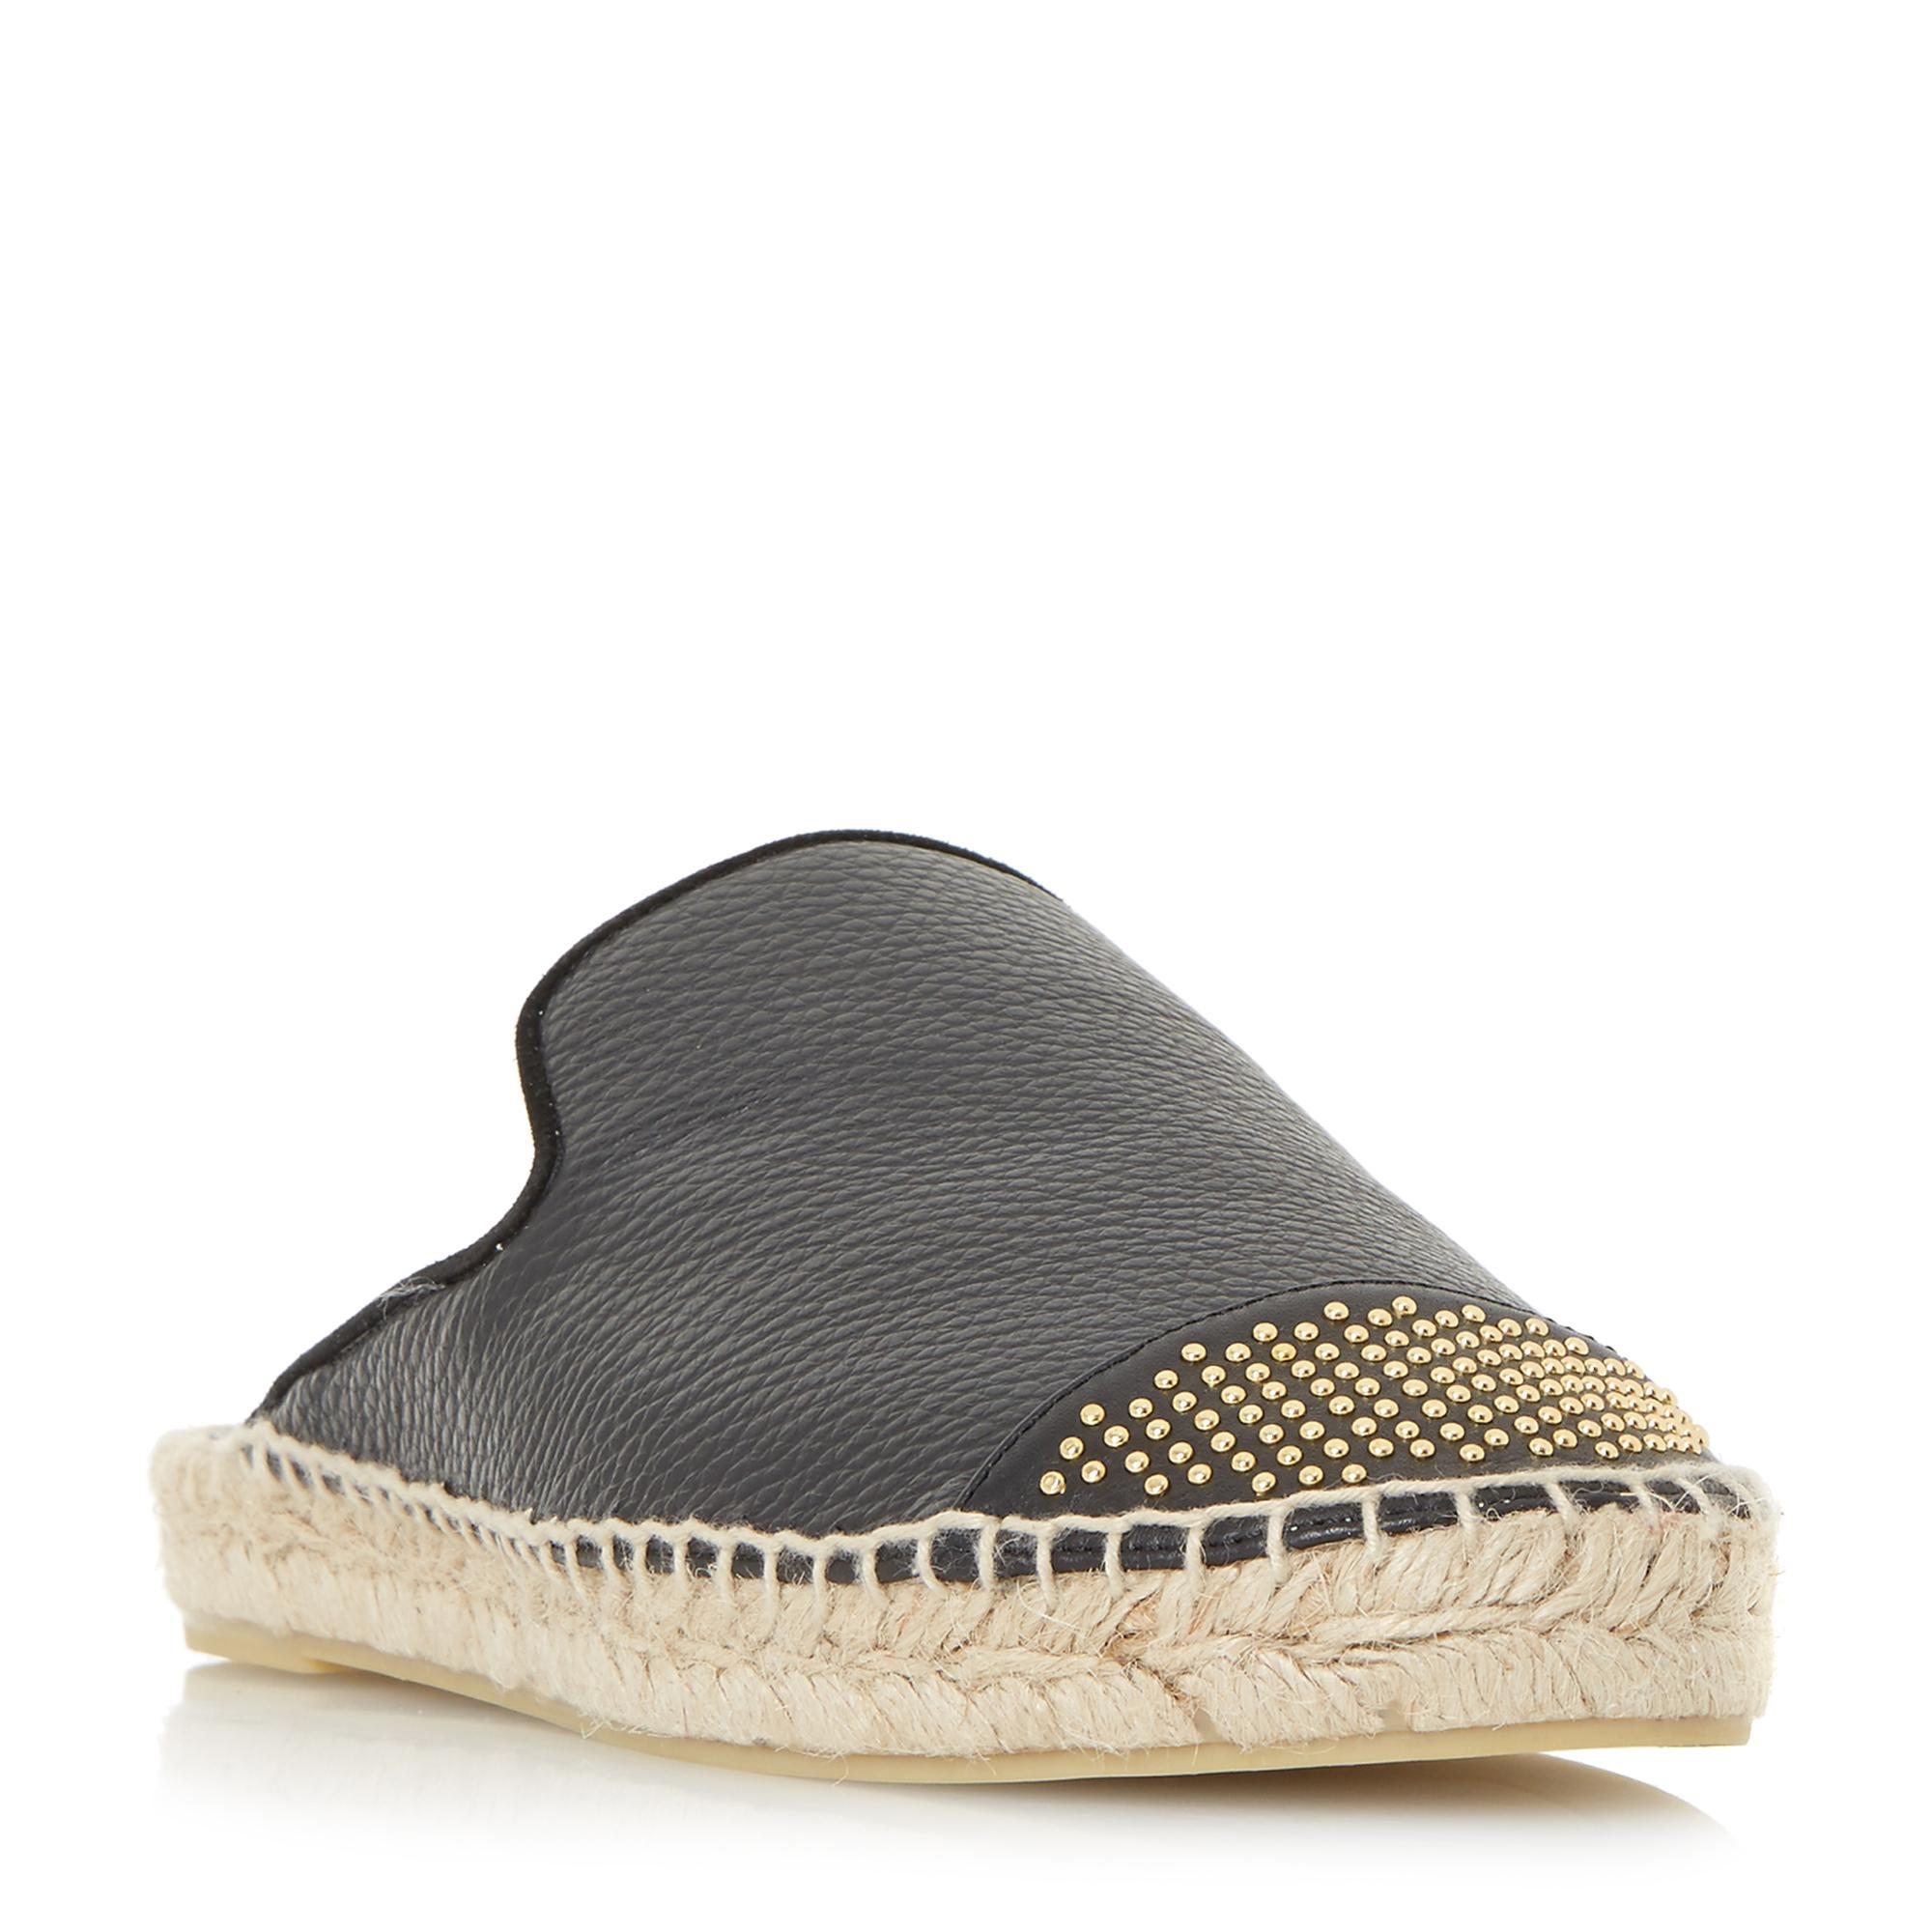 Dune  Women's Black Backless Espadrille Loafer Shoe